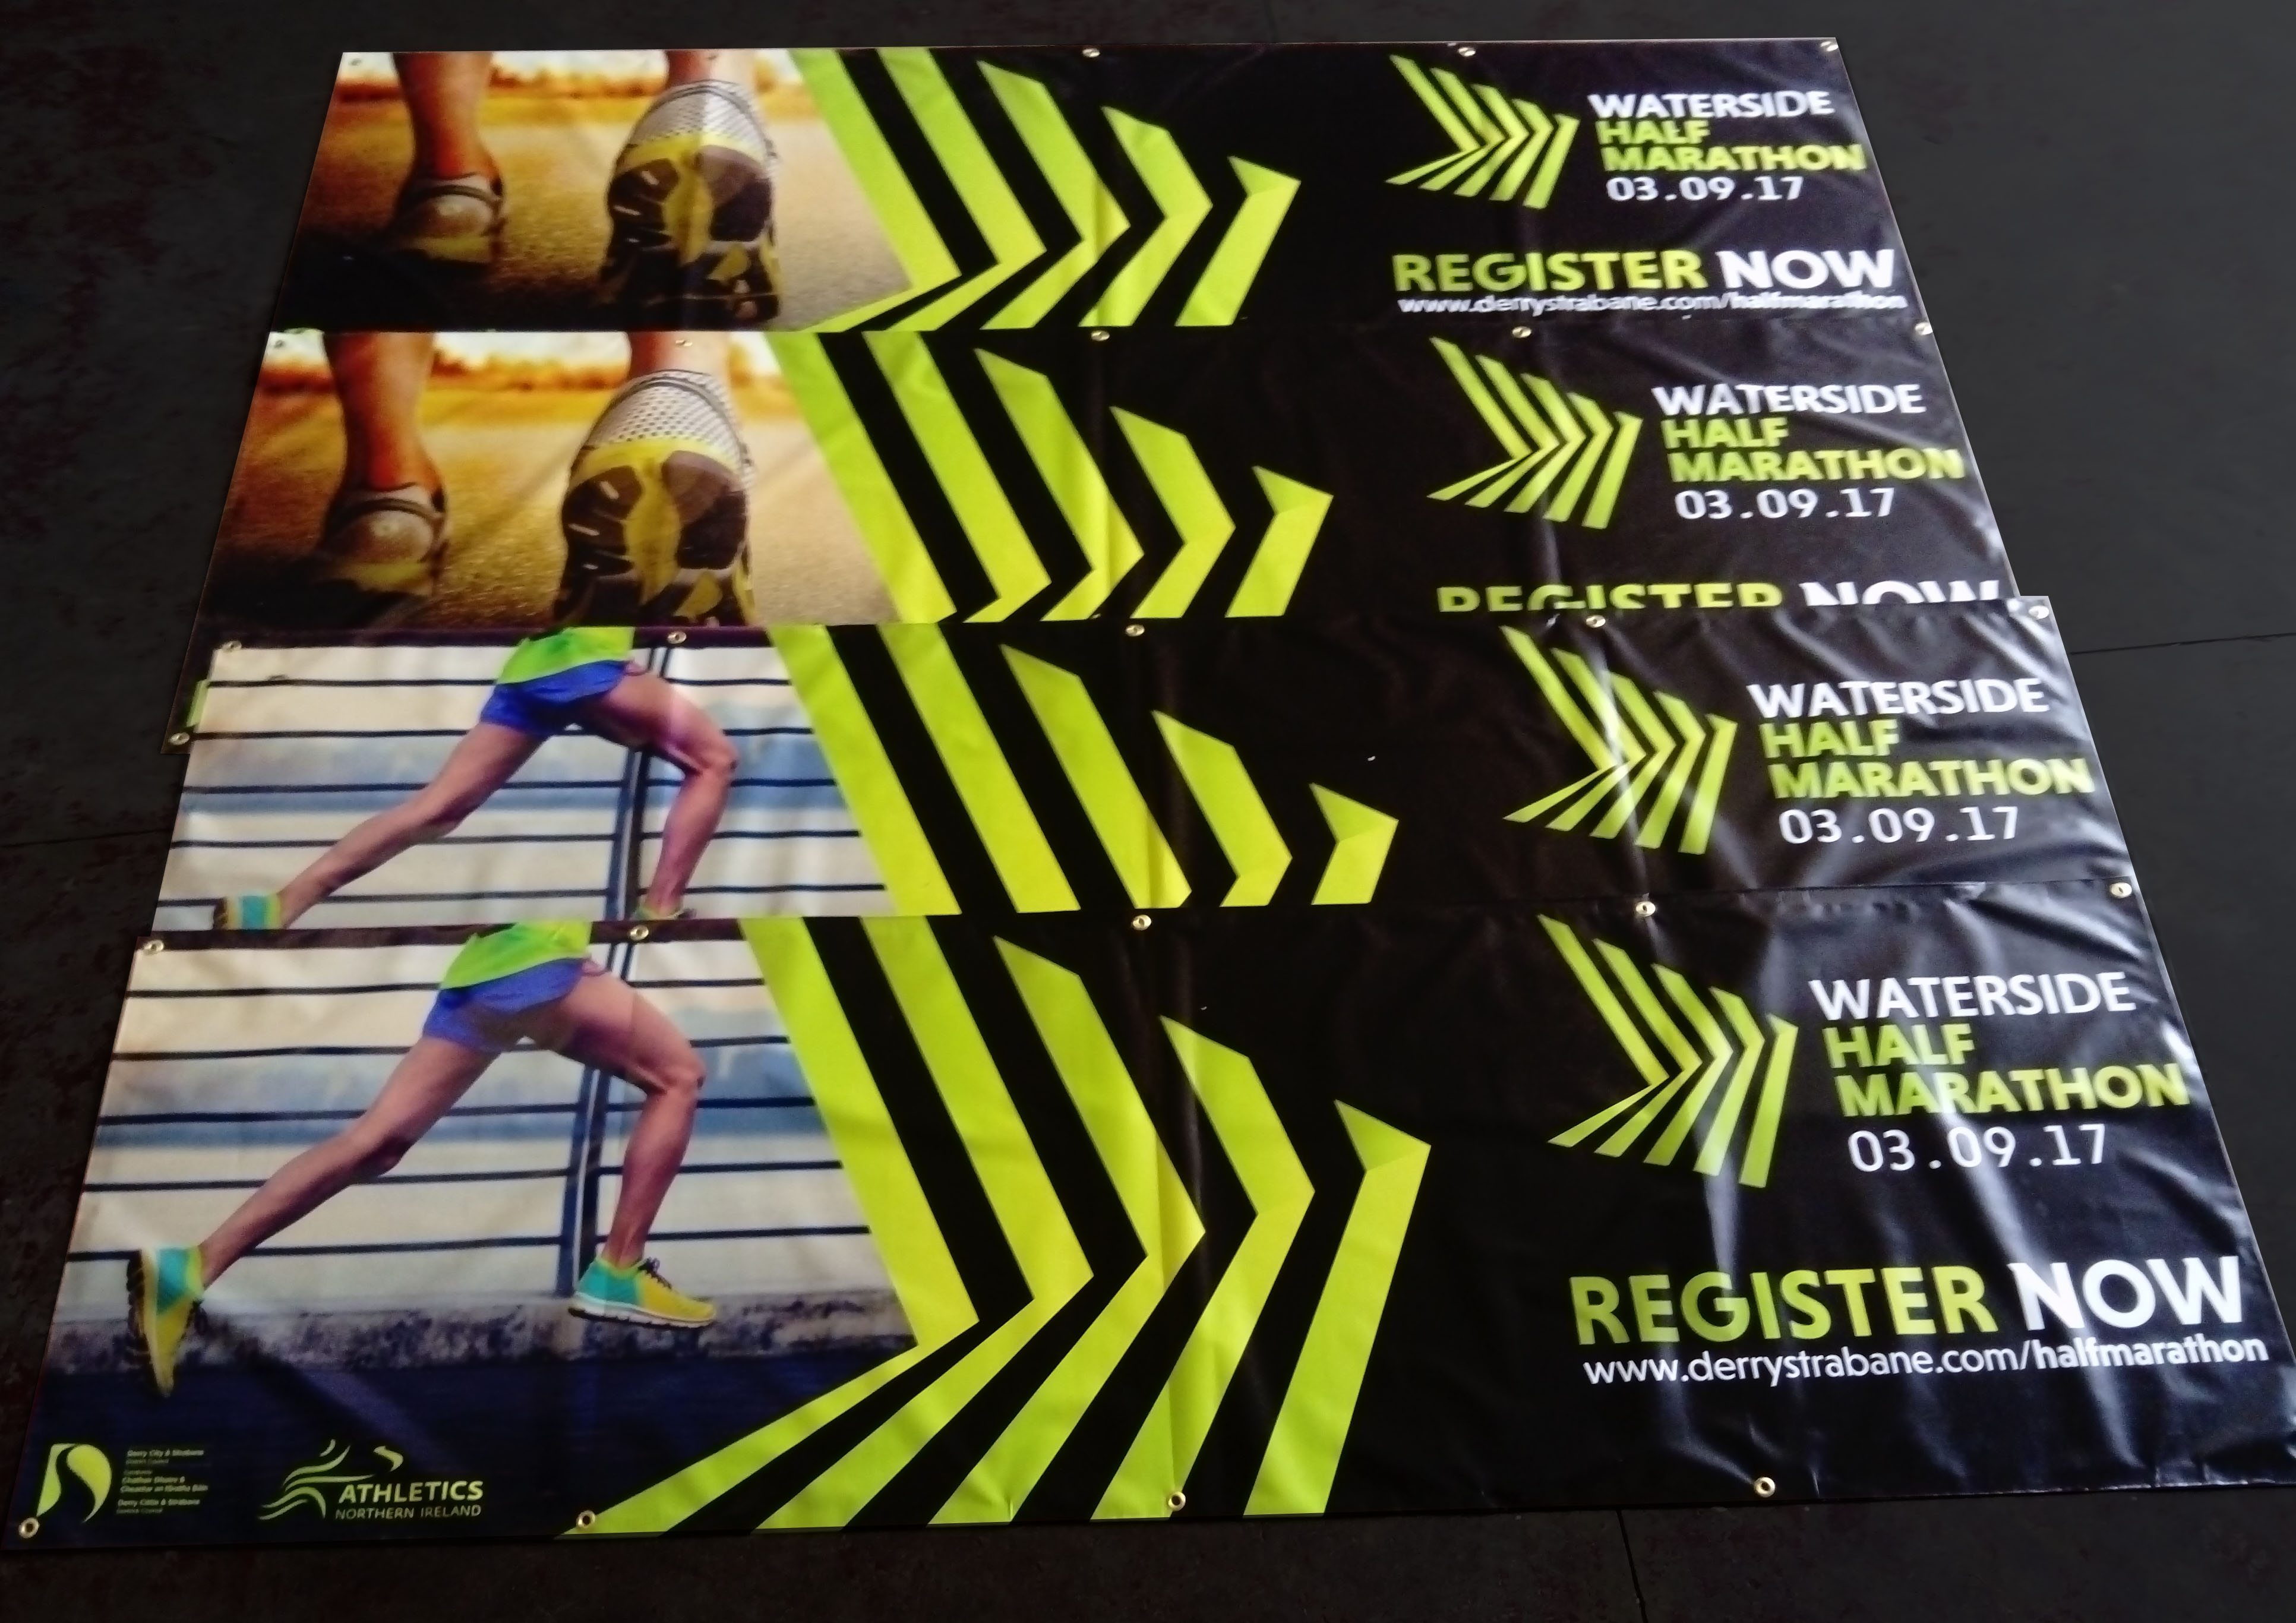 Banners for the Waterside Half Marathon